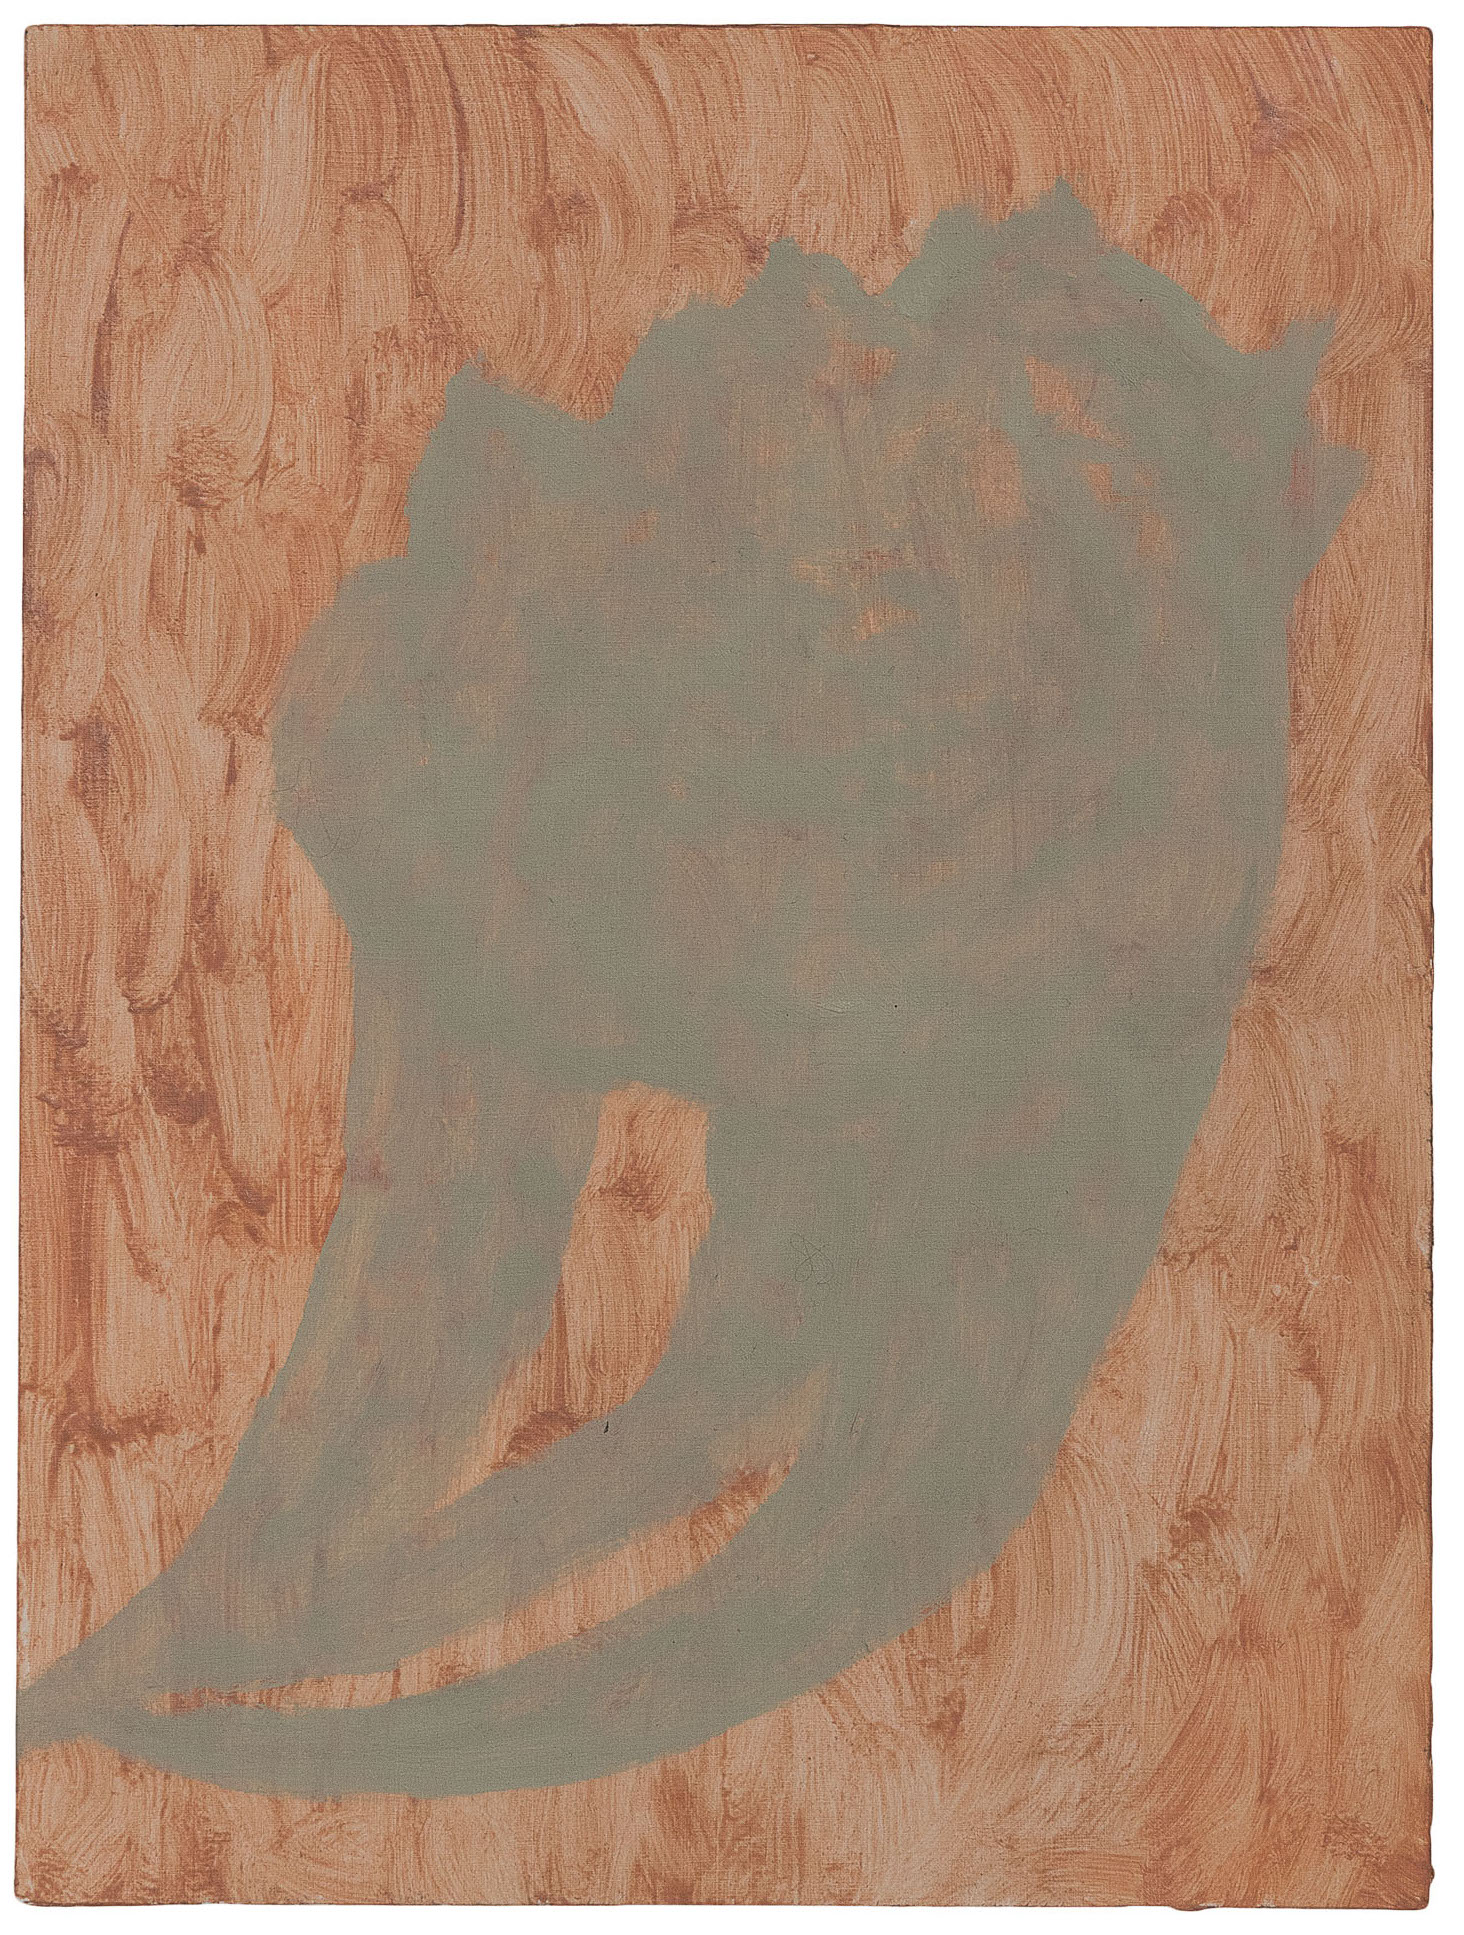 Veronika Hilger, untitled, oil on paper on wood, 2018, 40 x 30 cm